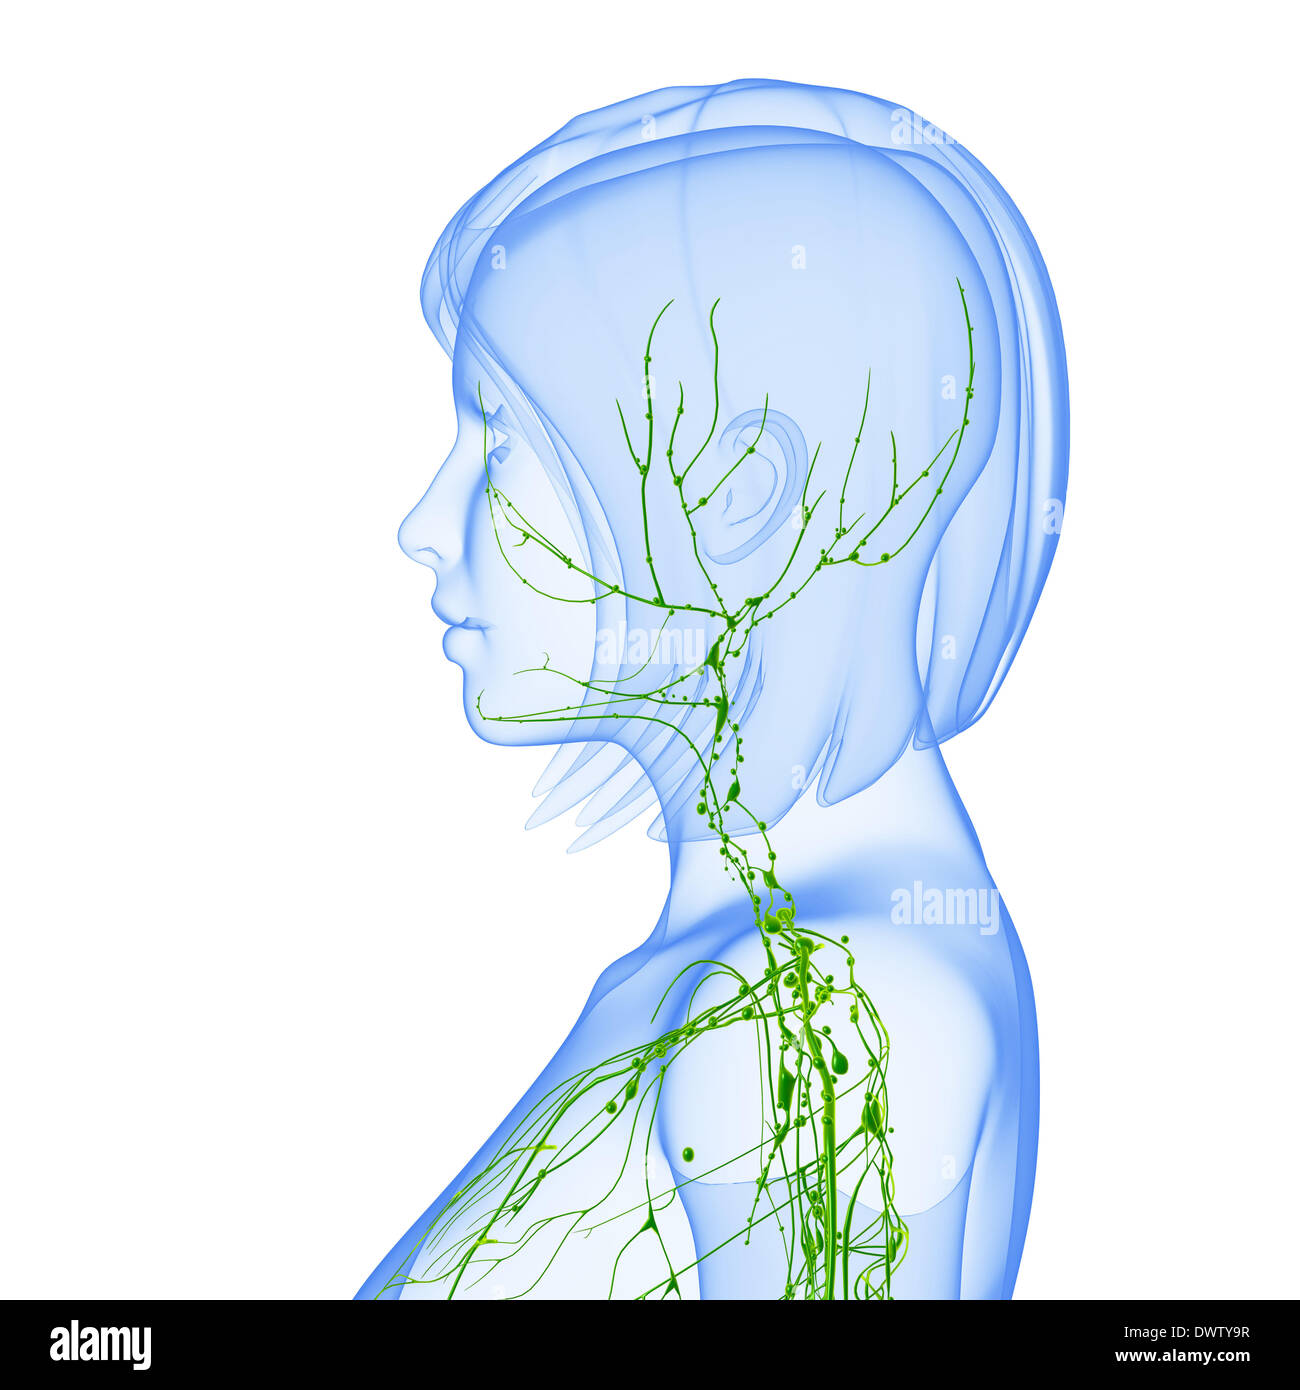 Lymphatic System Head Neck Drawing Stock Photo 67545795 Alamy